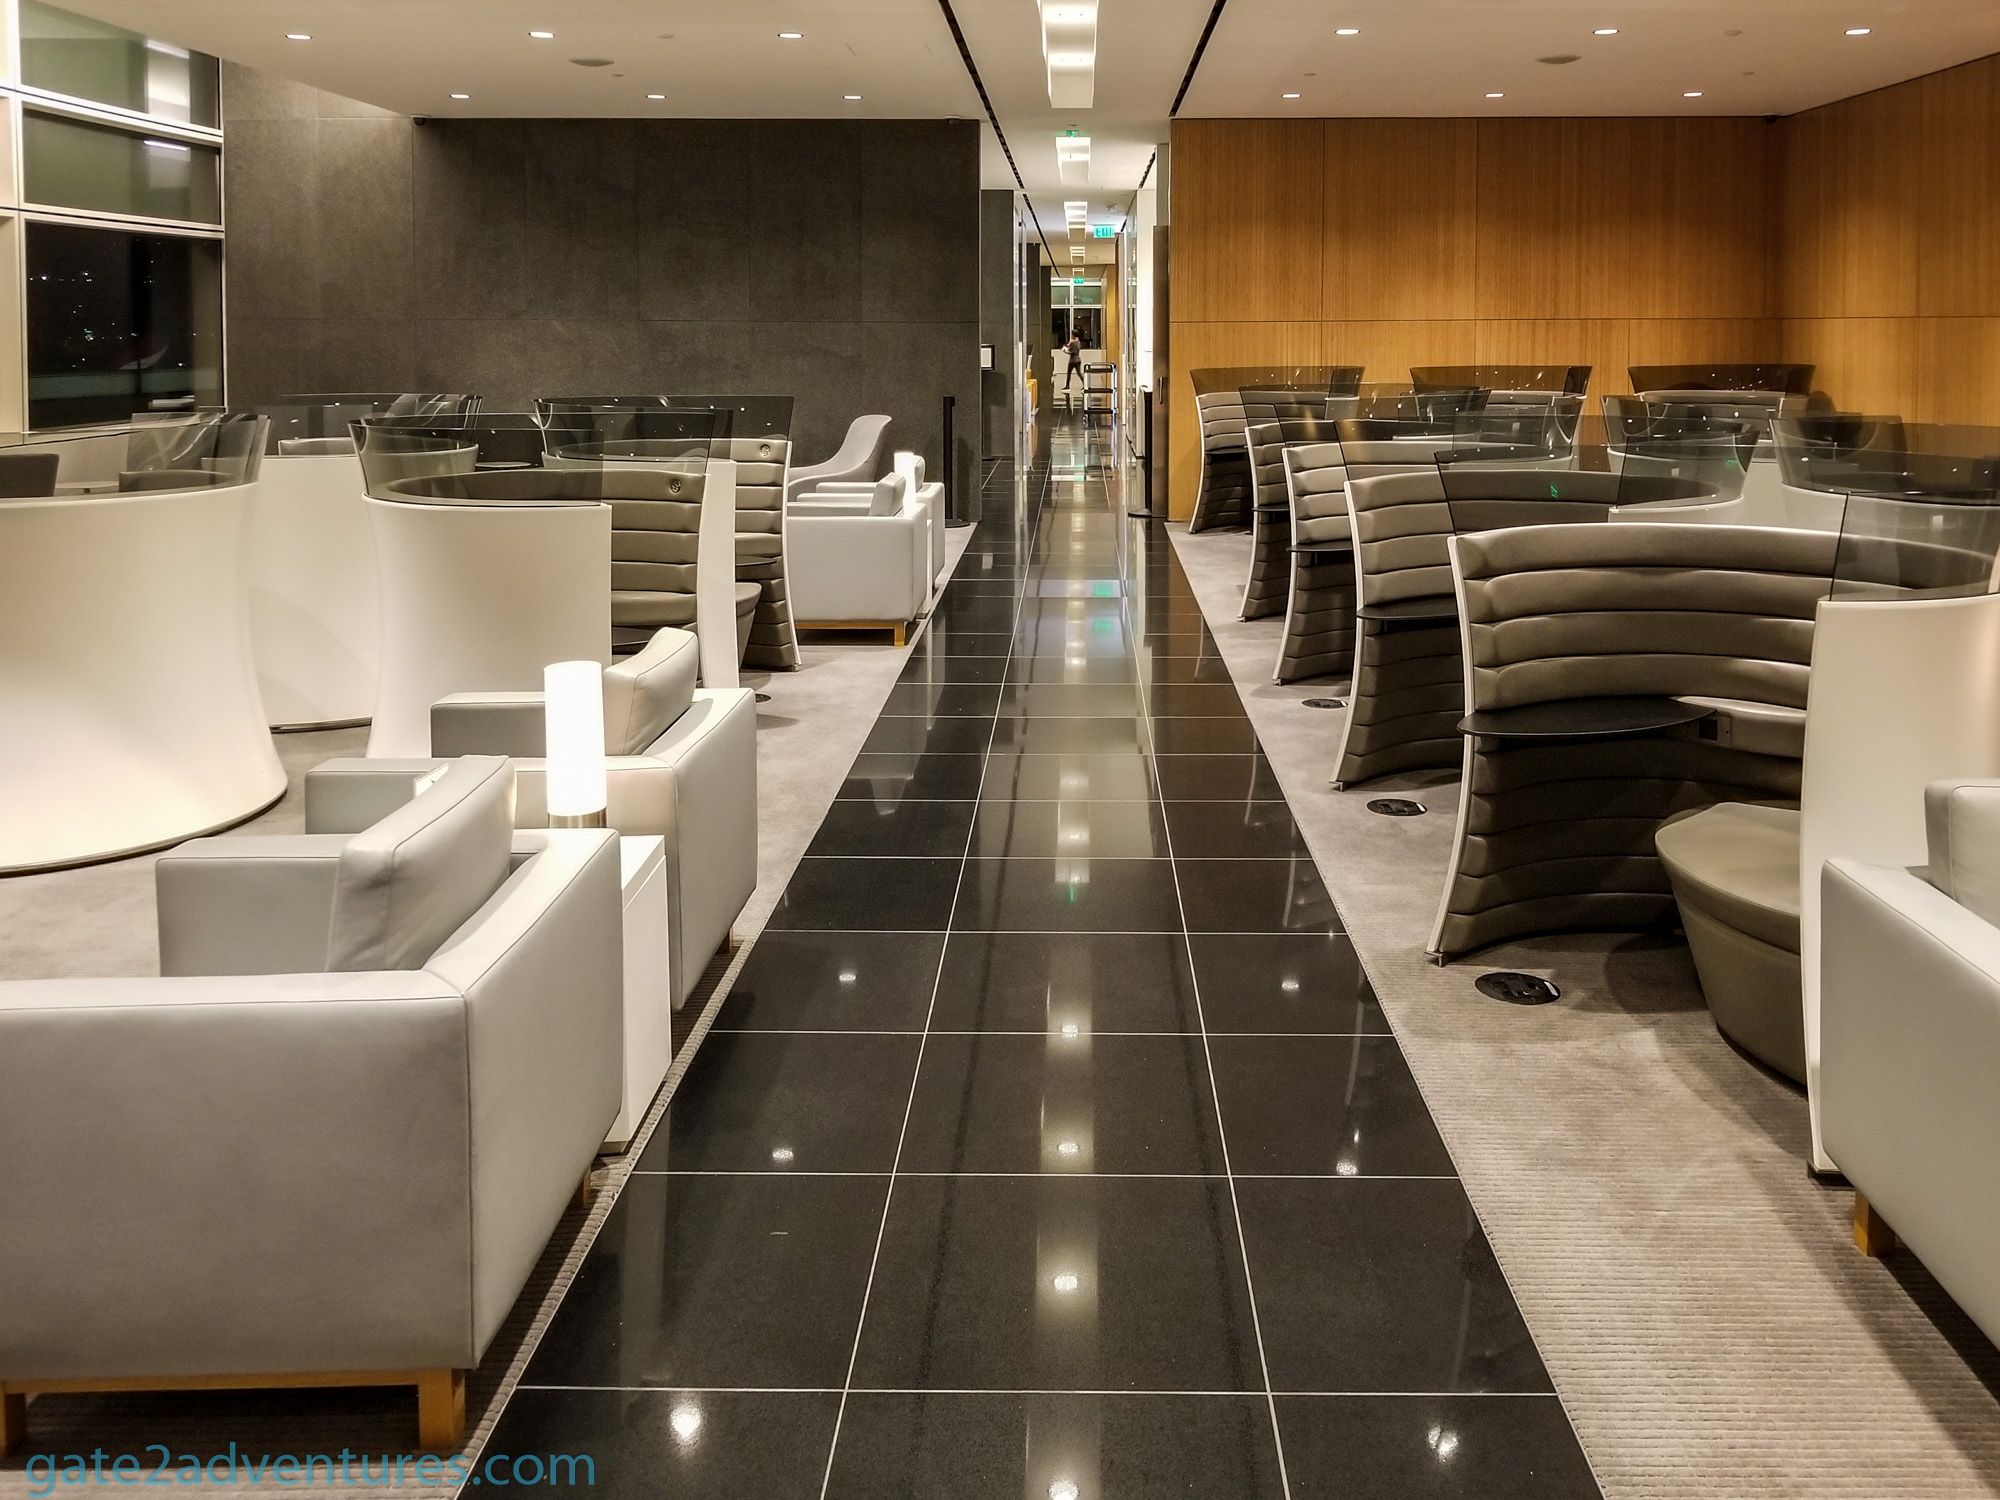 Lounge Review: Cathay Pacific First and Business Class Lounge San Francisco International Airport (SFO)